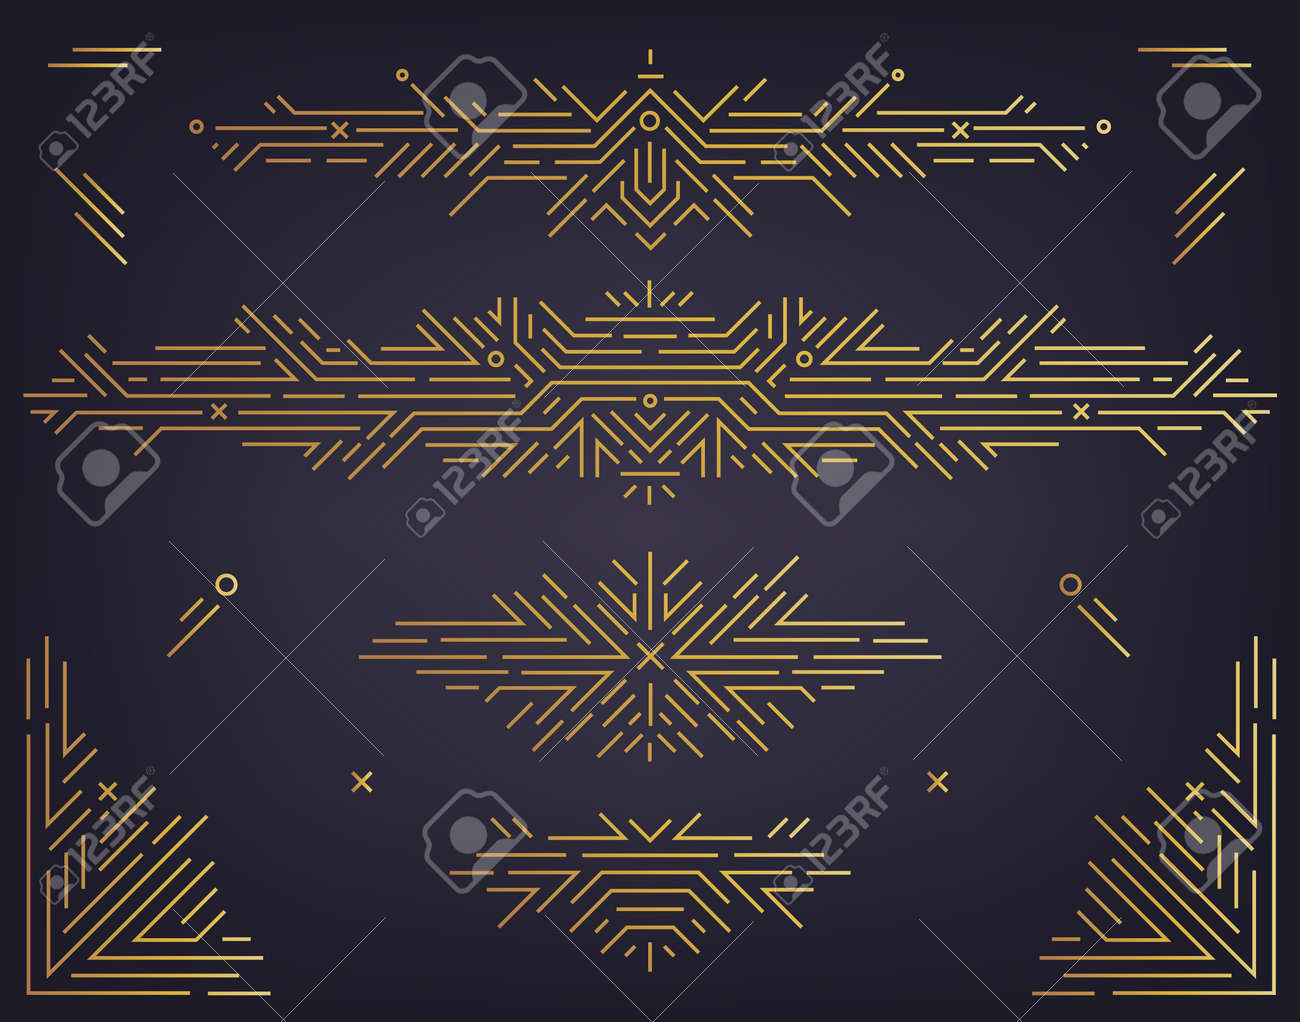 Vector set of art deco linear dividers, borders, frames, decorative design elements. Creative geometric abstract templates in classic retro style of 1920s. Use for packaging, ad, as banner - 171373512